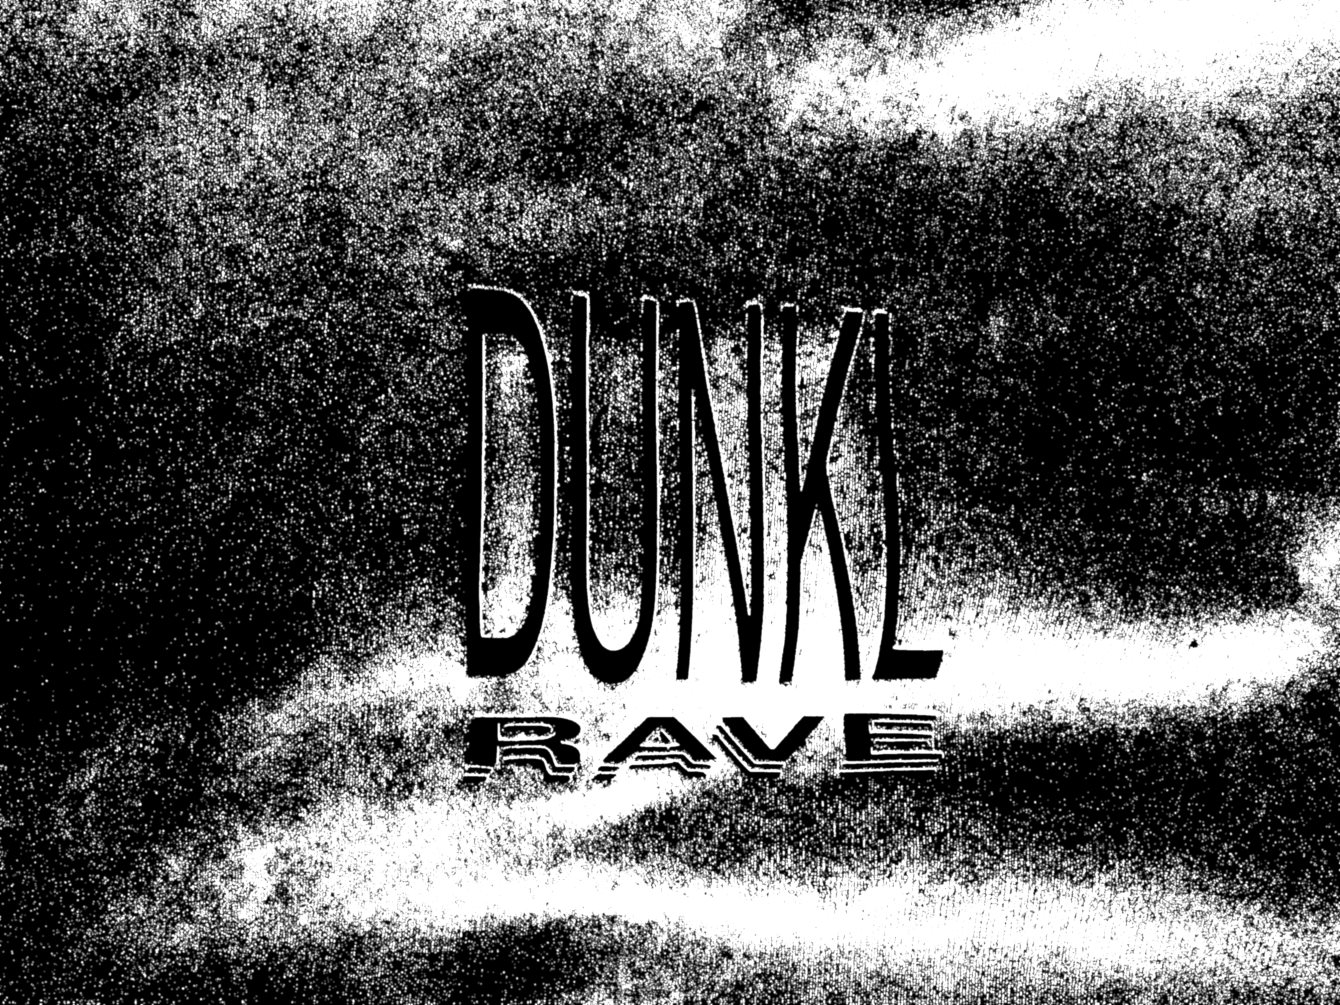 Dunkl with Kaiser, Lifka, Xynia,Casio, Non Reversible, Philip Bader - Flyer front